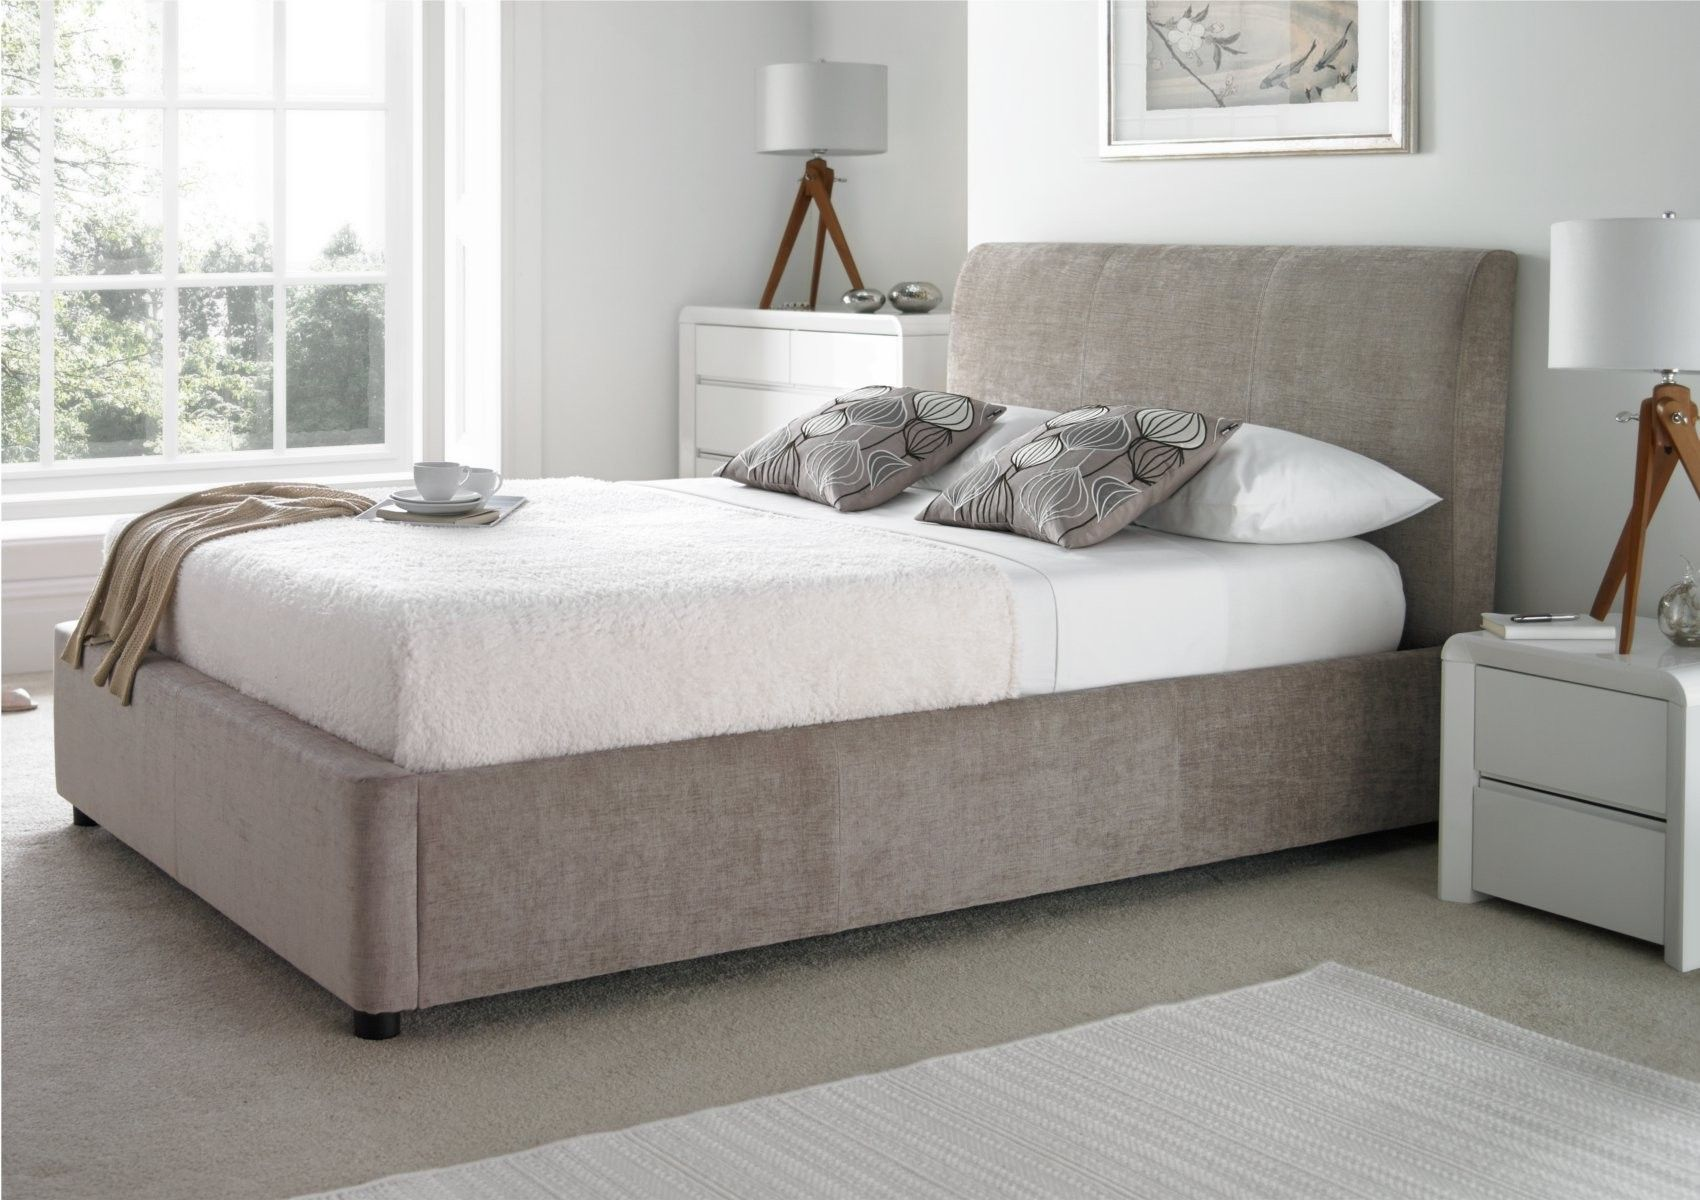 Serenity Upholstered Ottoman Storage Bed - Mink - Storage Beds - Beds & Serenity Upholstered Ottoman Storage Bed - Mink - Storage Beds ...